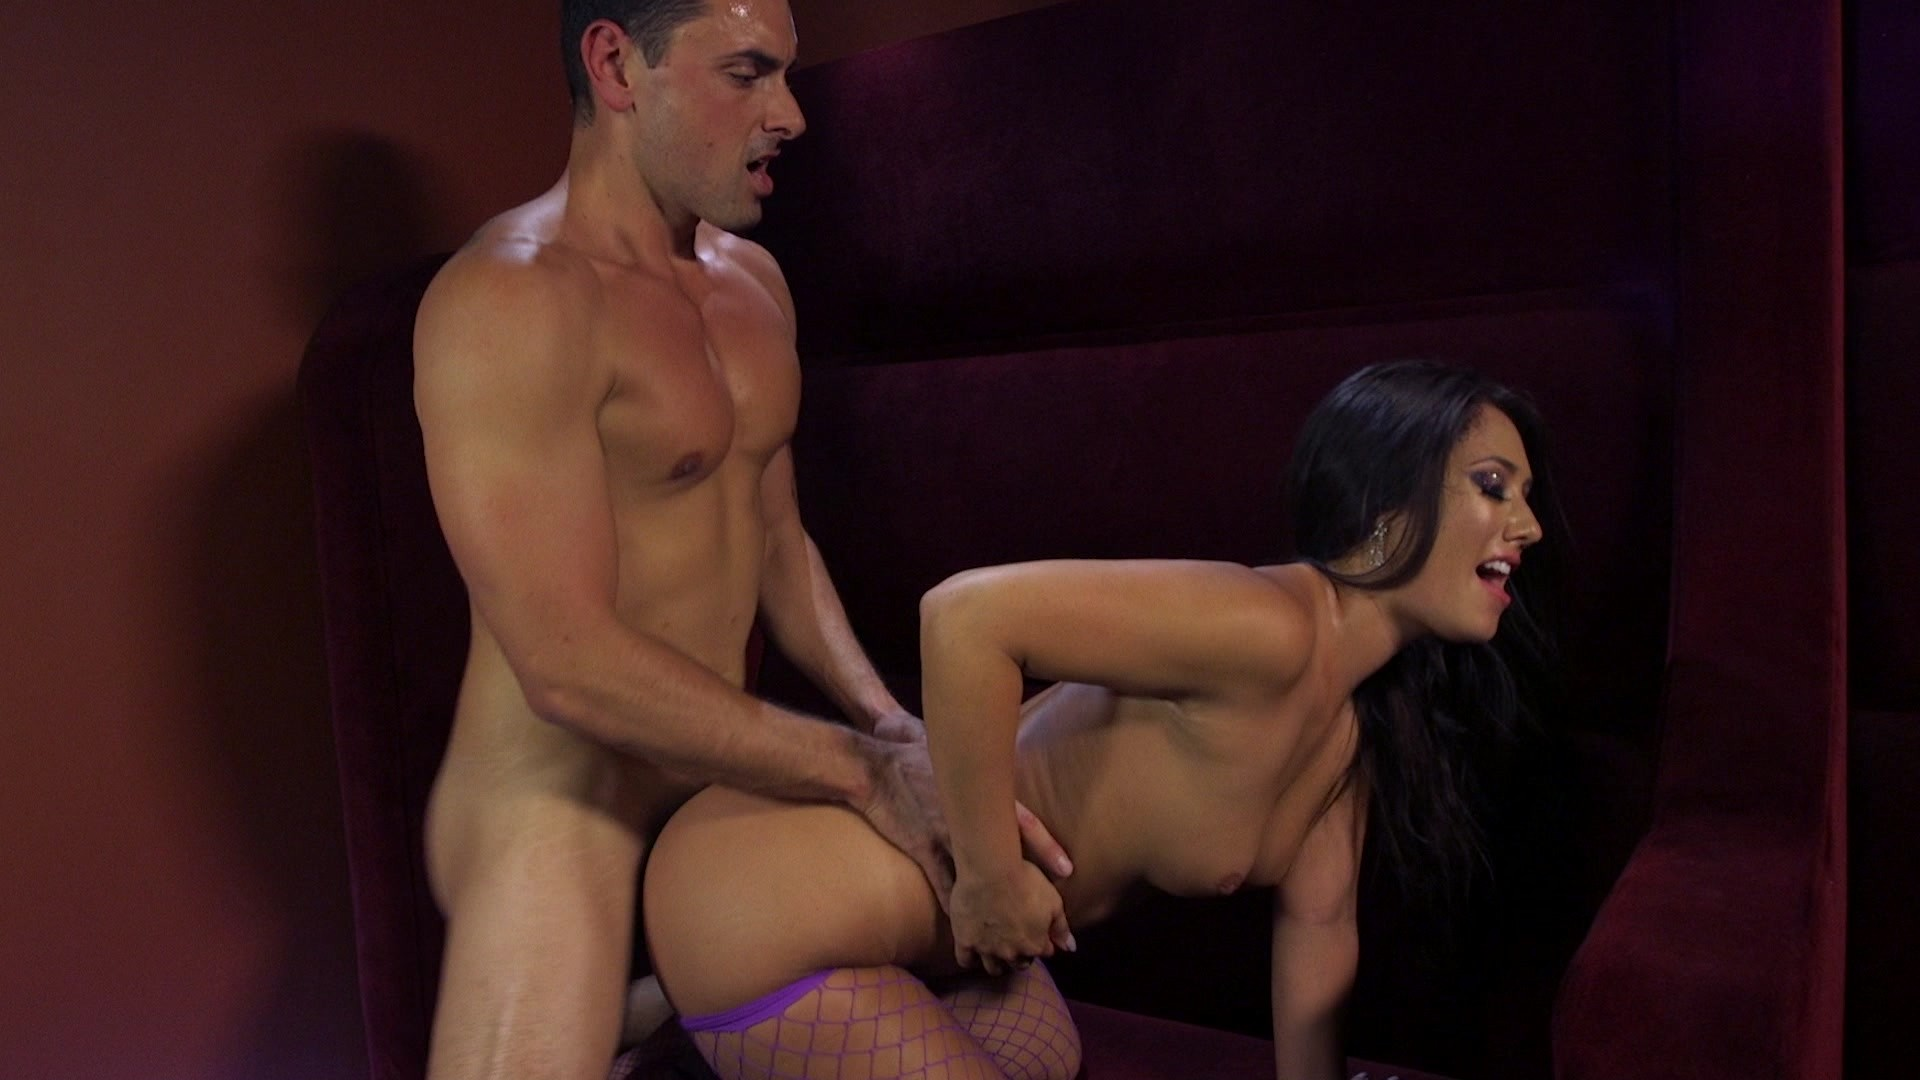 Abigail mac seduces hung stud then rides that big cock trenchcoatx 4